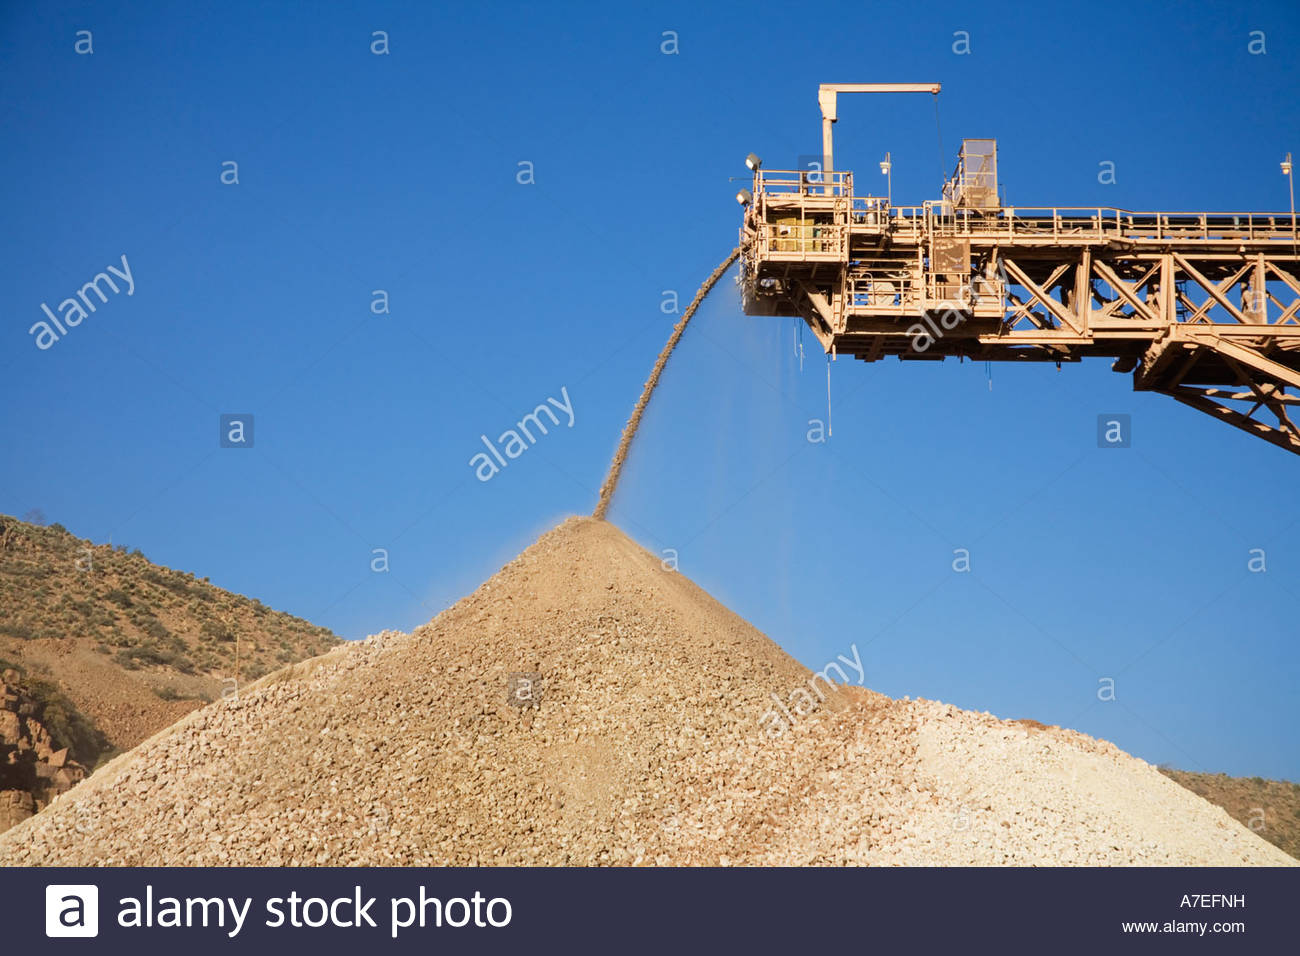 dodge jaw crusher with Ore Crusher on Types Crushing Equipment in addition Hewitt Robins Double 2 Deck Screen Plant P162714 moreover Jaw Crusher 55107659 likewise Crusher as well Paul O Abbe 36 In X 42 In Ball Mill P155130.